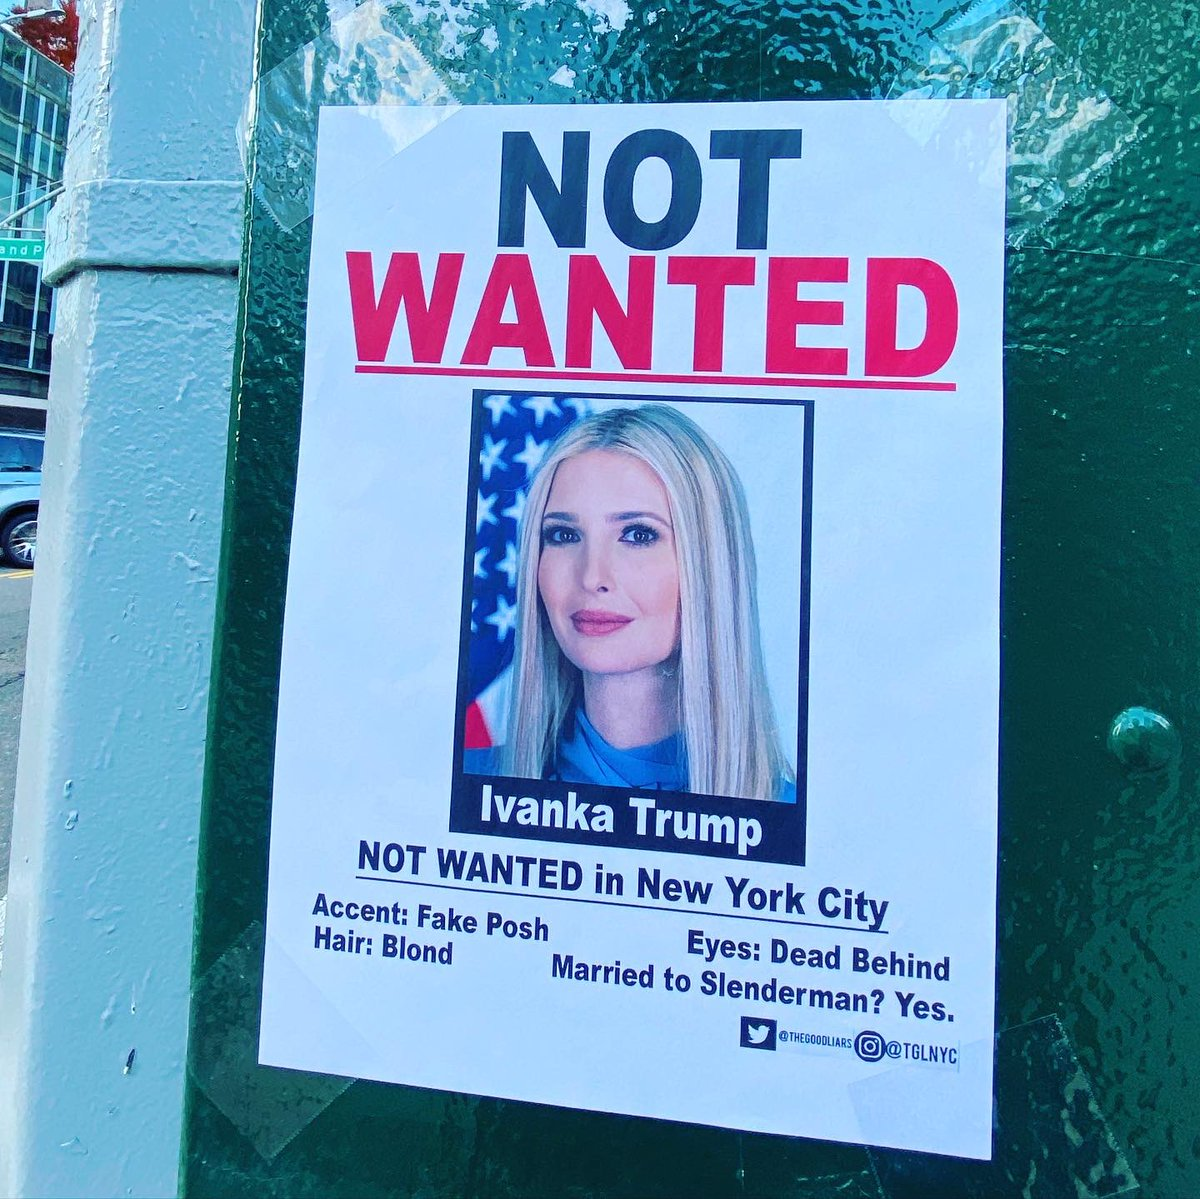 """""""Not Wanted: Ivanka Trump"""" signs are up in New York https://t.co/74Ft4vkePc"""